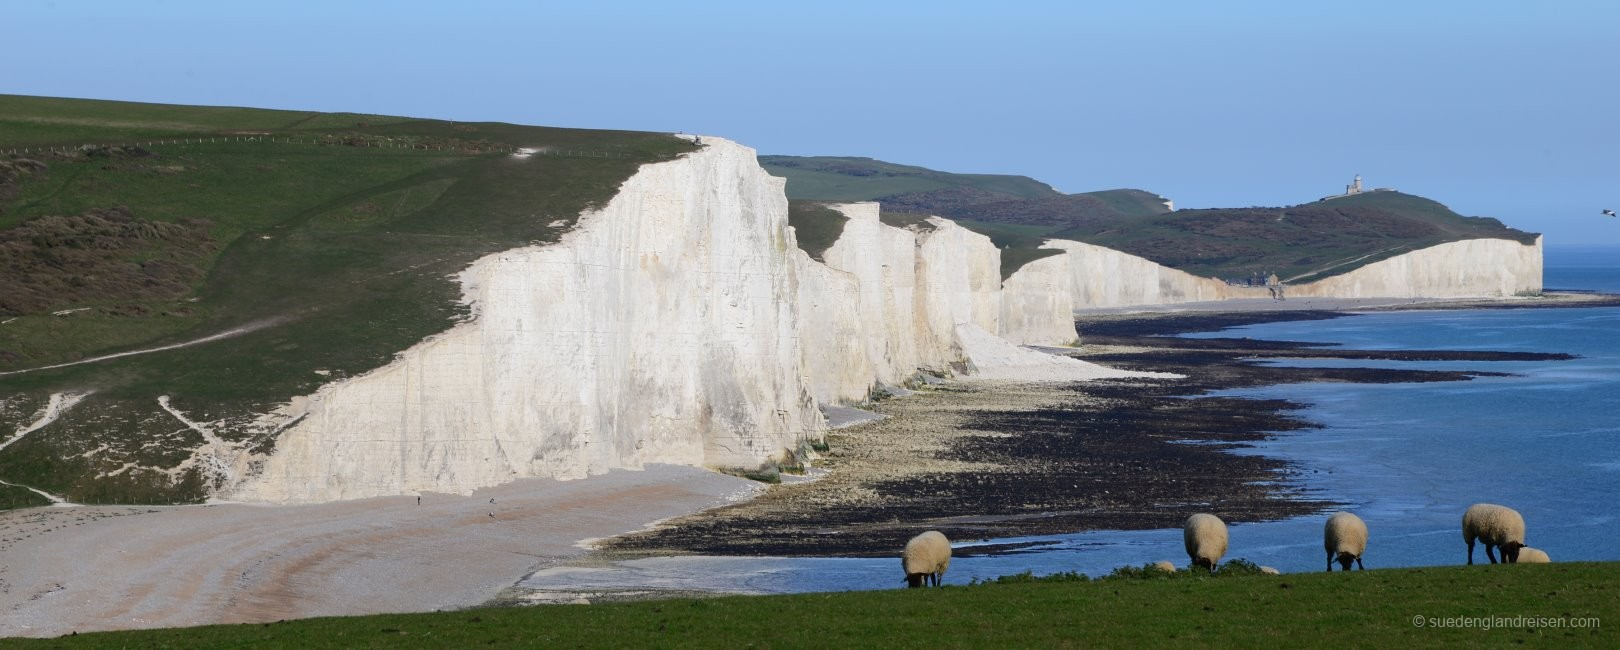 The white chalk cliffs of the Seven Sisters